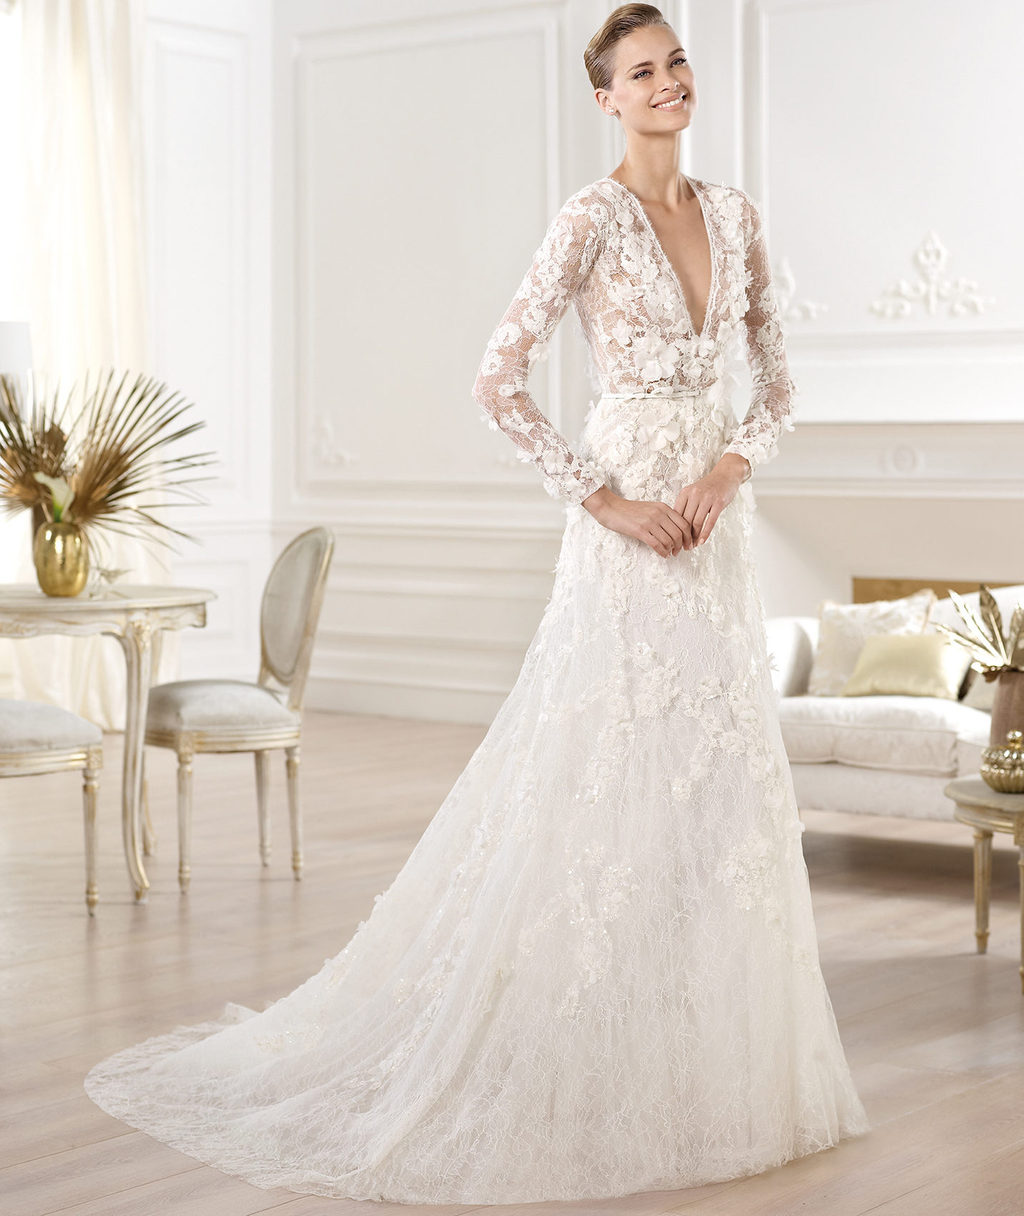 Elie-saab-wedding-dress-2014-pronovias-bridal-crux.full